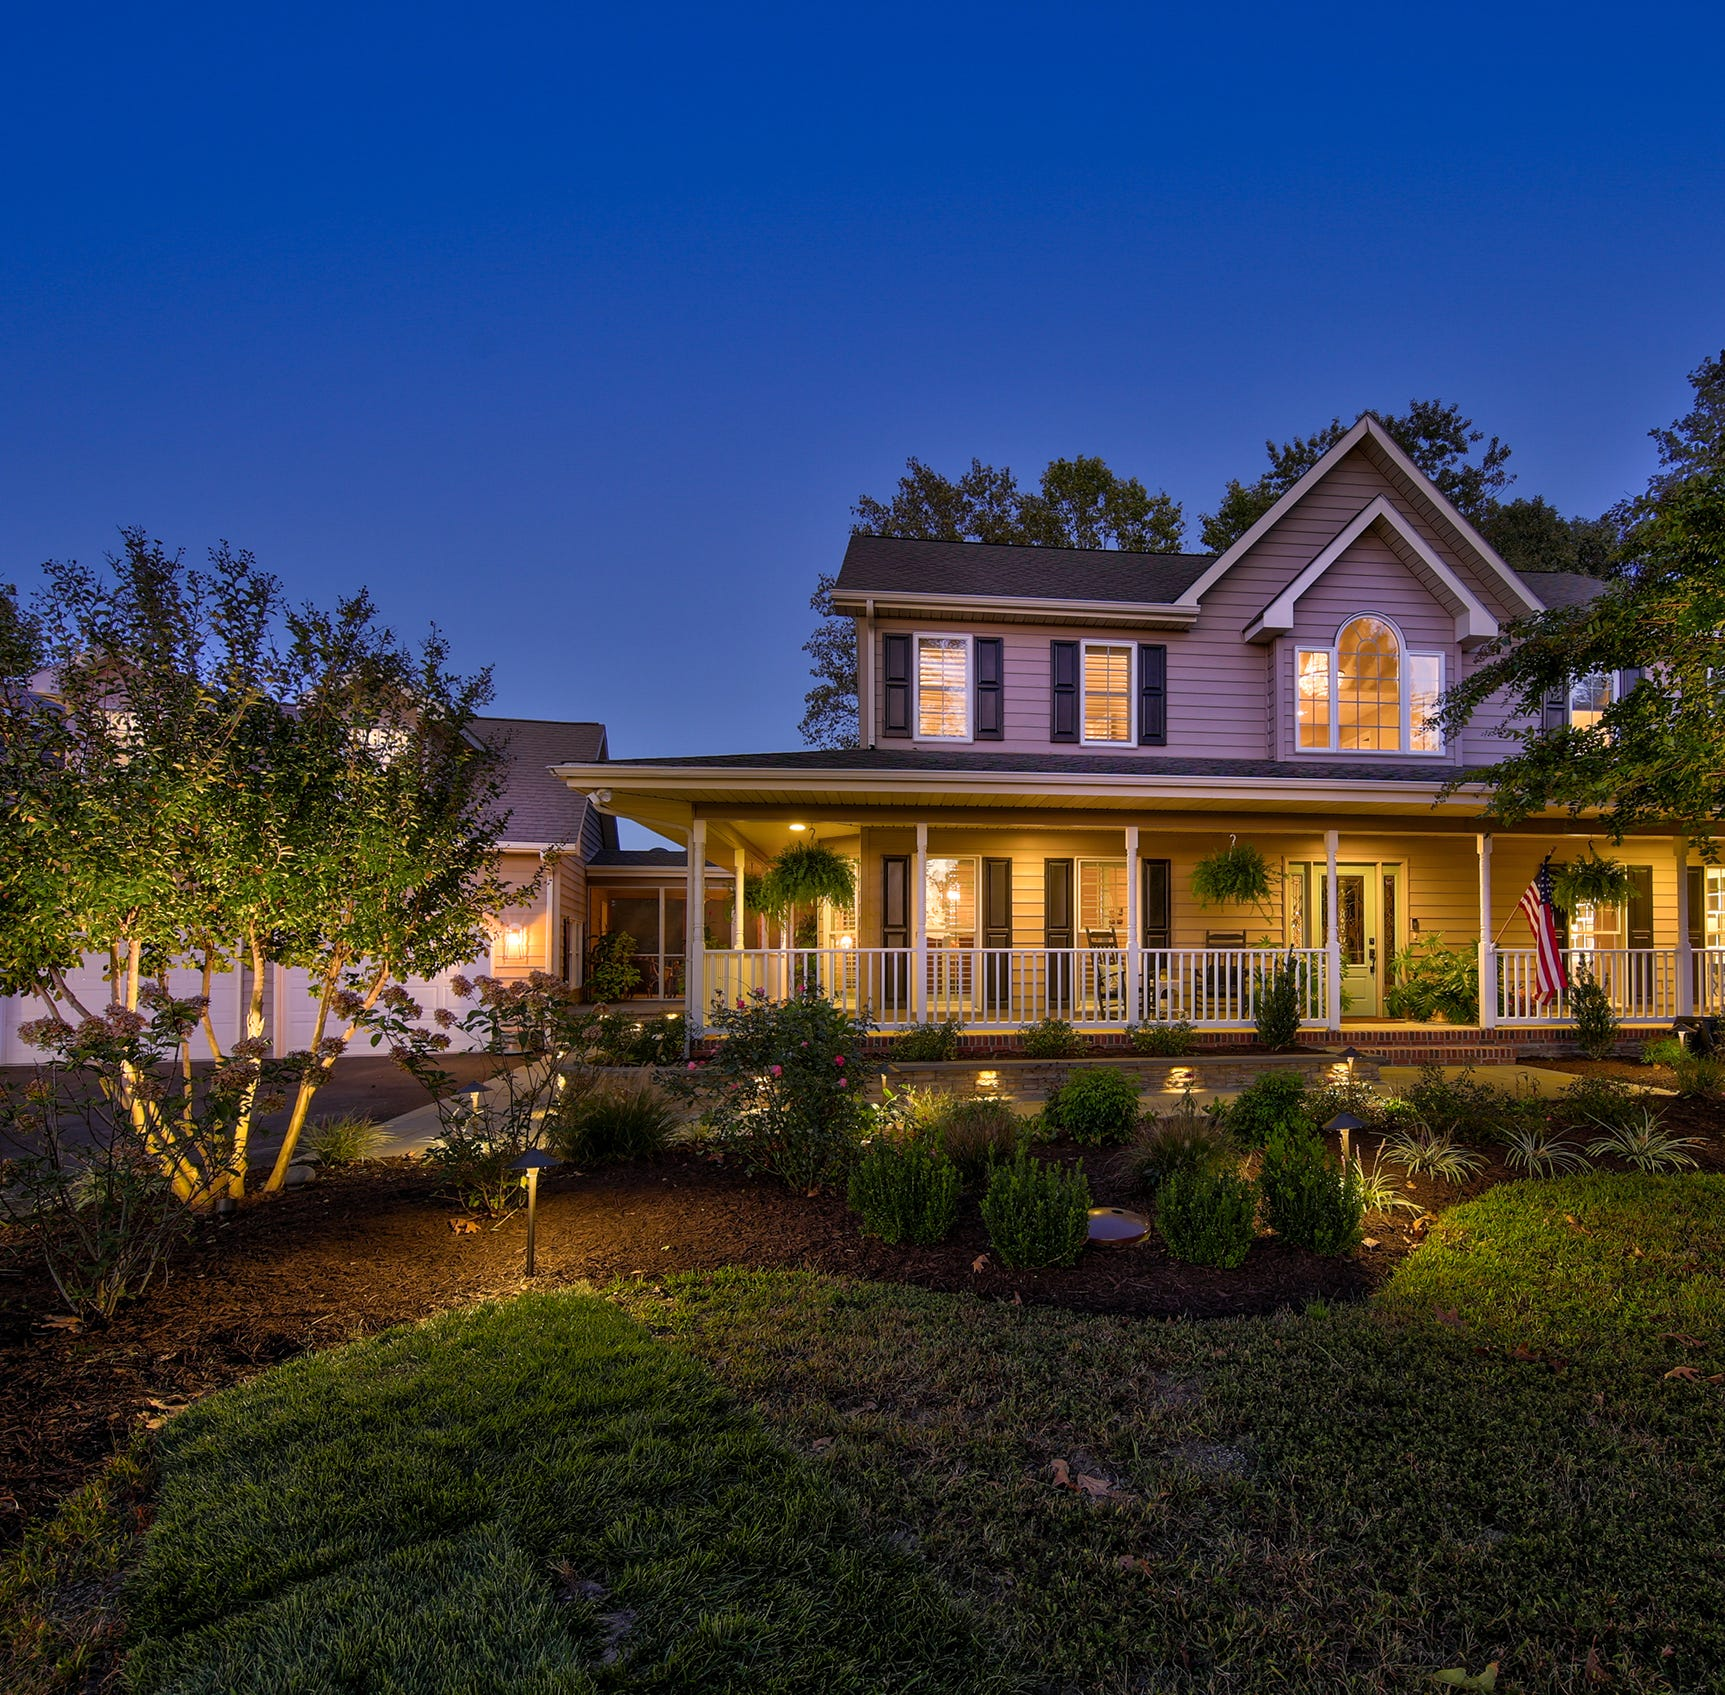 Huge rooms, porch, tiered decks make this Rehoboth house perfect for entertaining